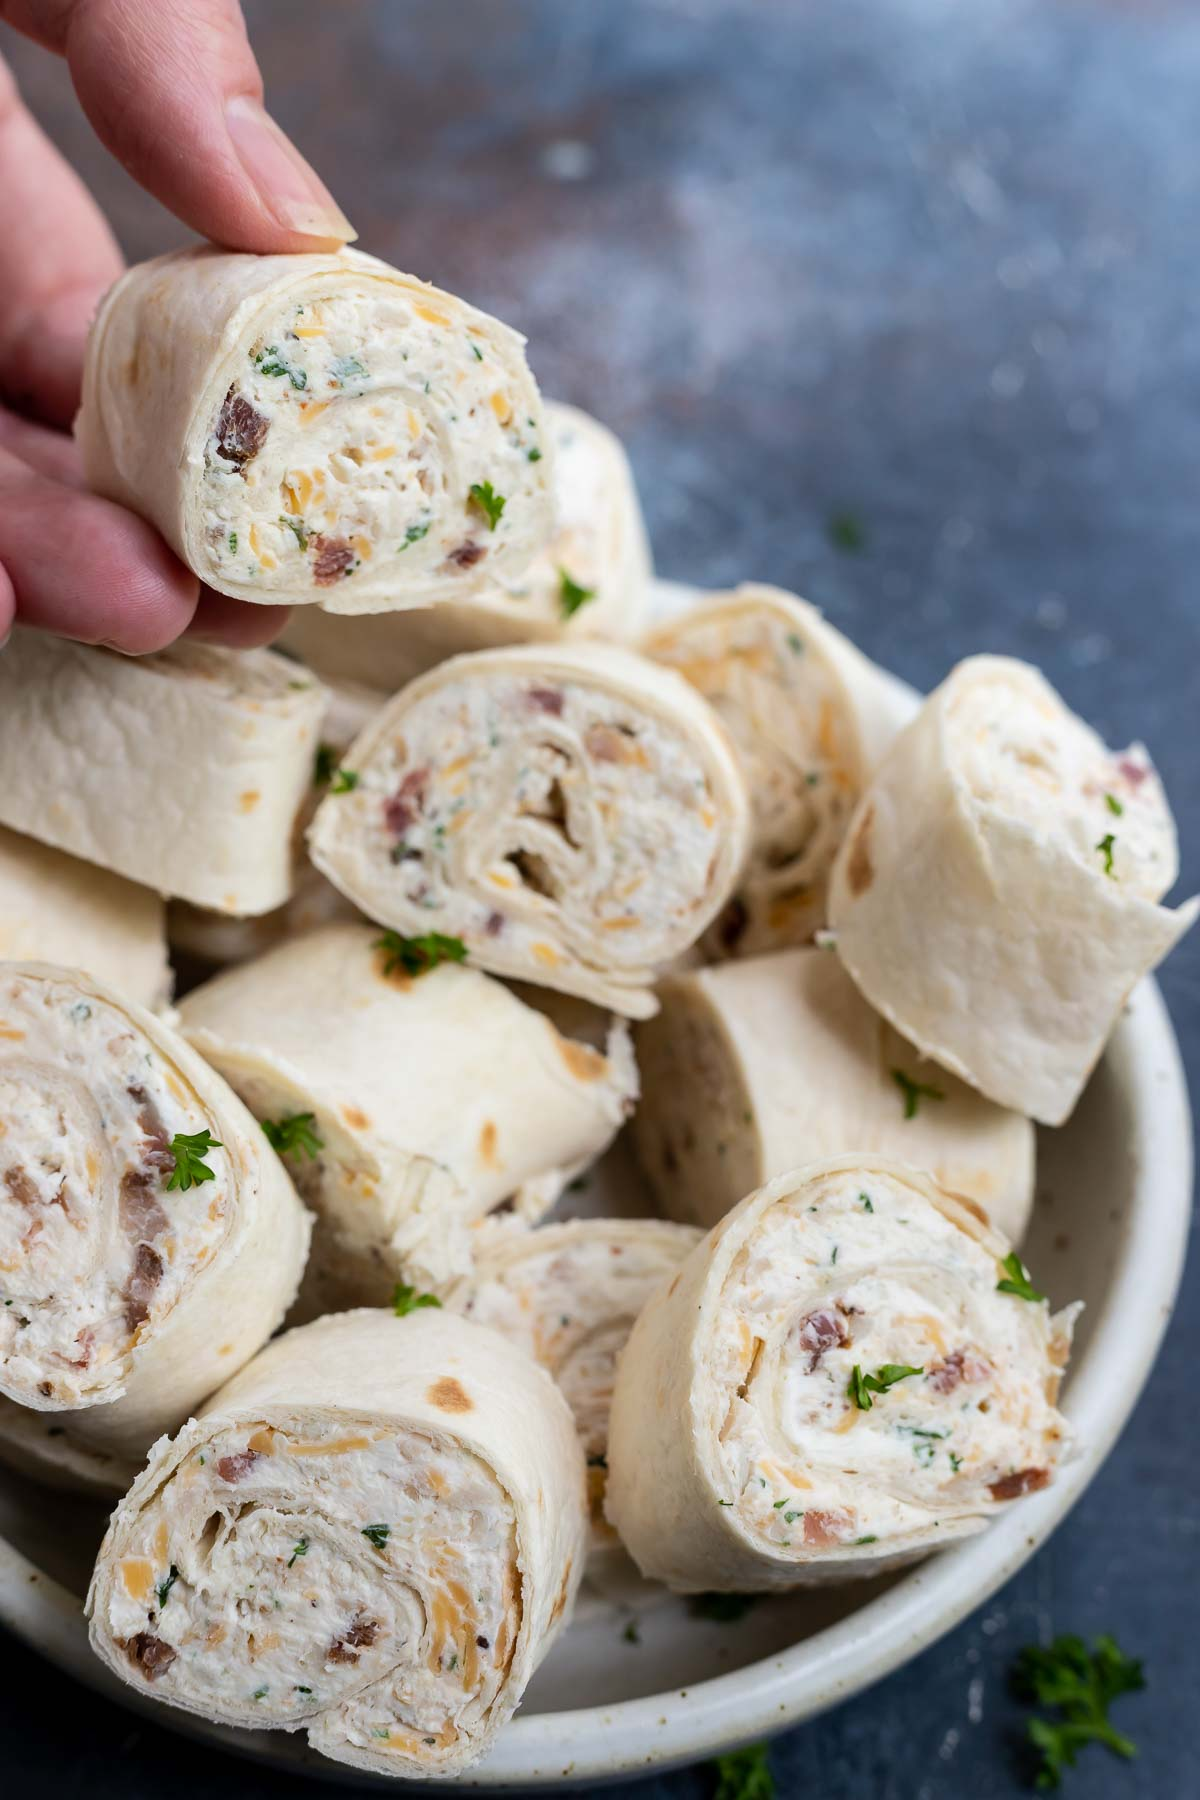 hand grabbing tortilla roll up from white plate